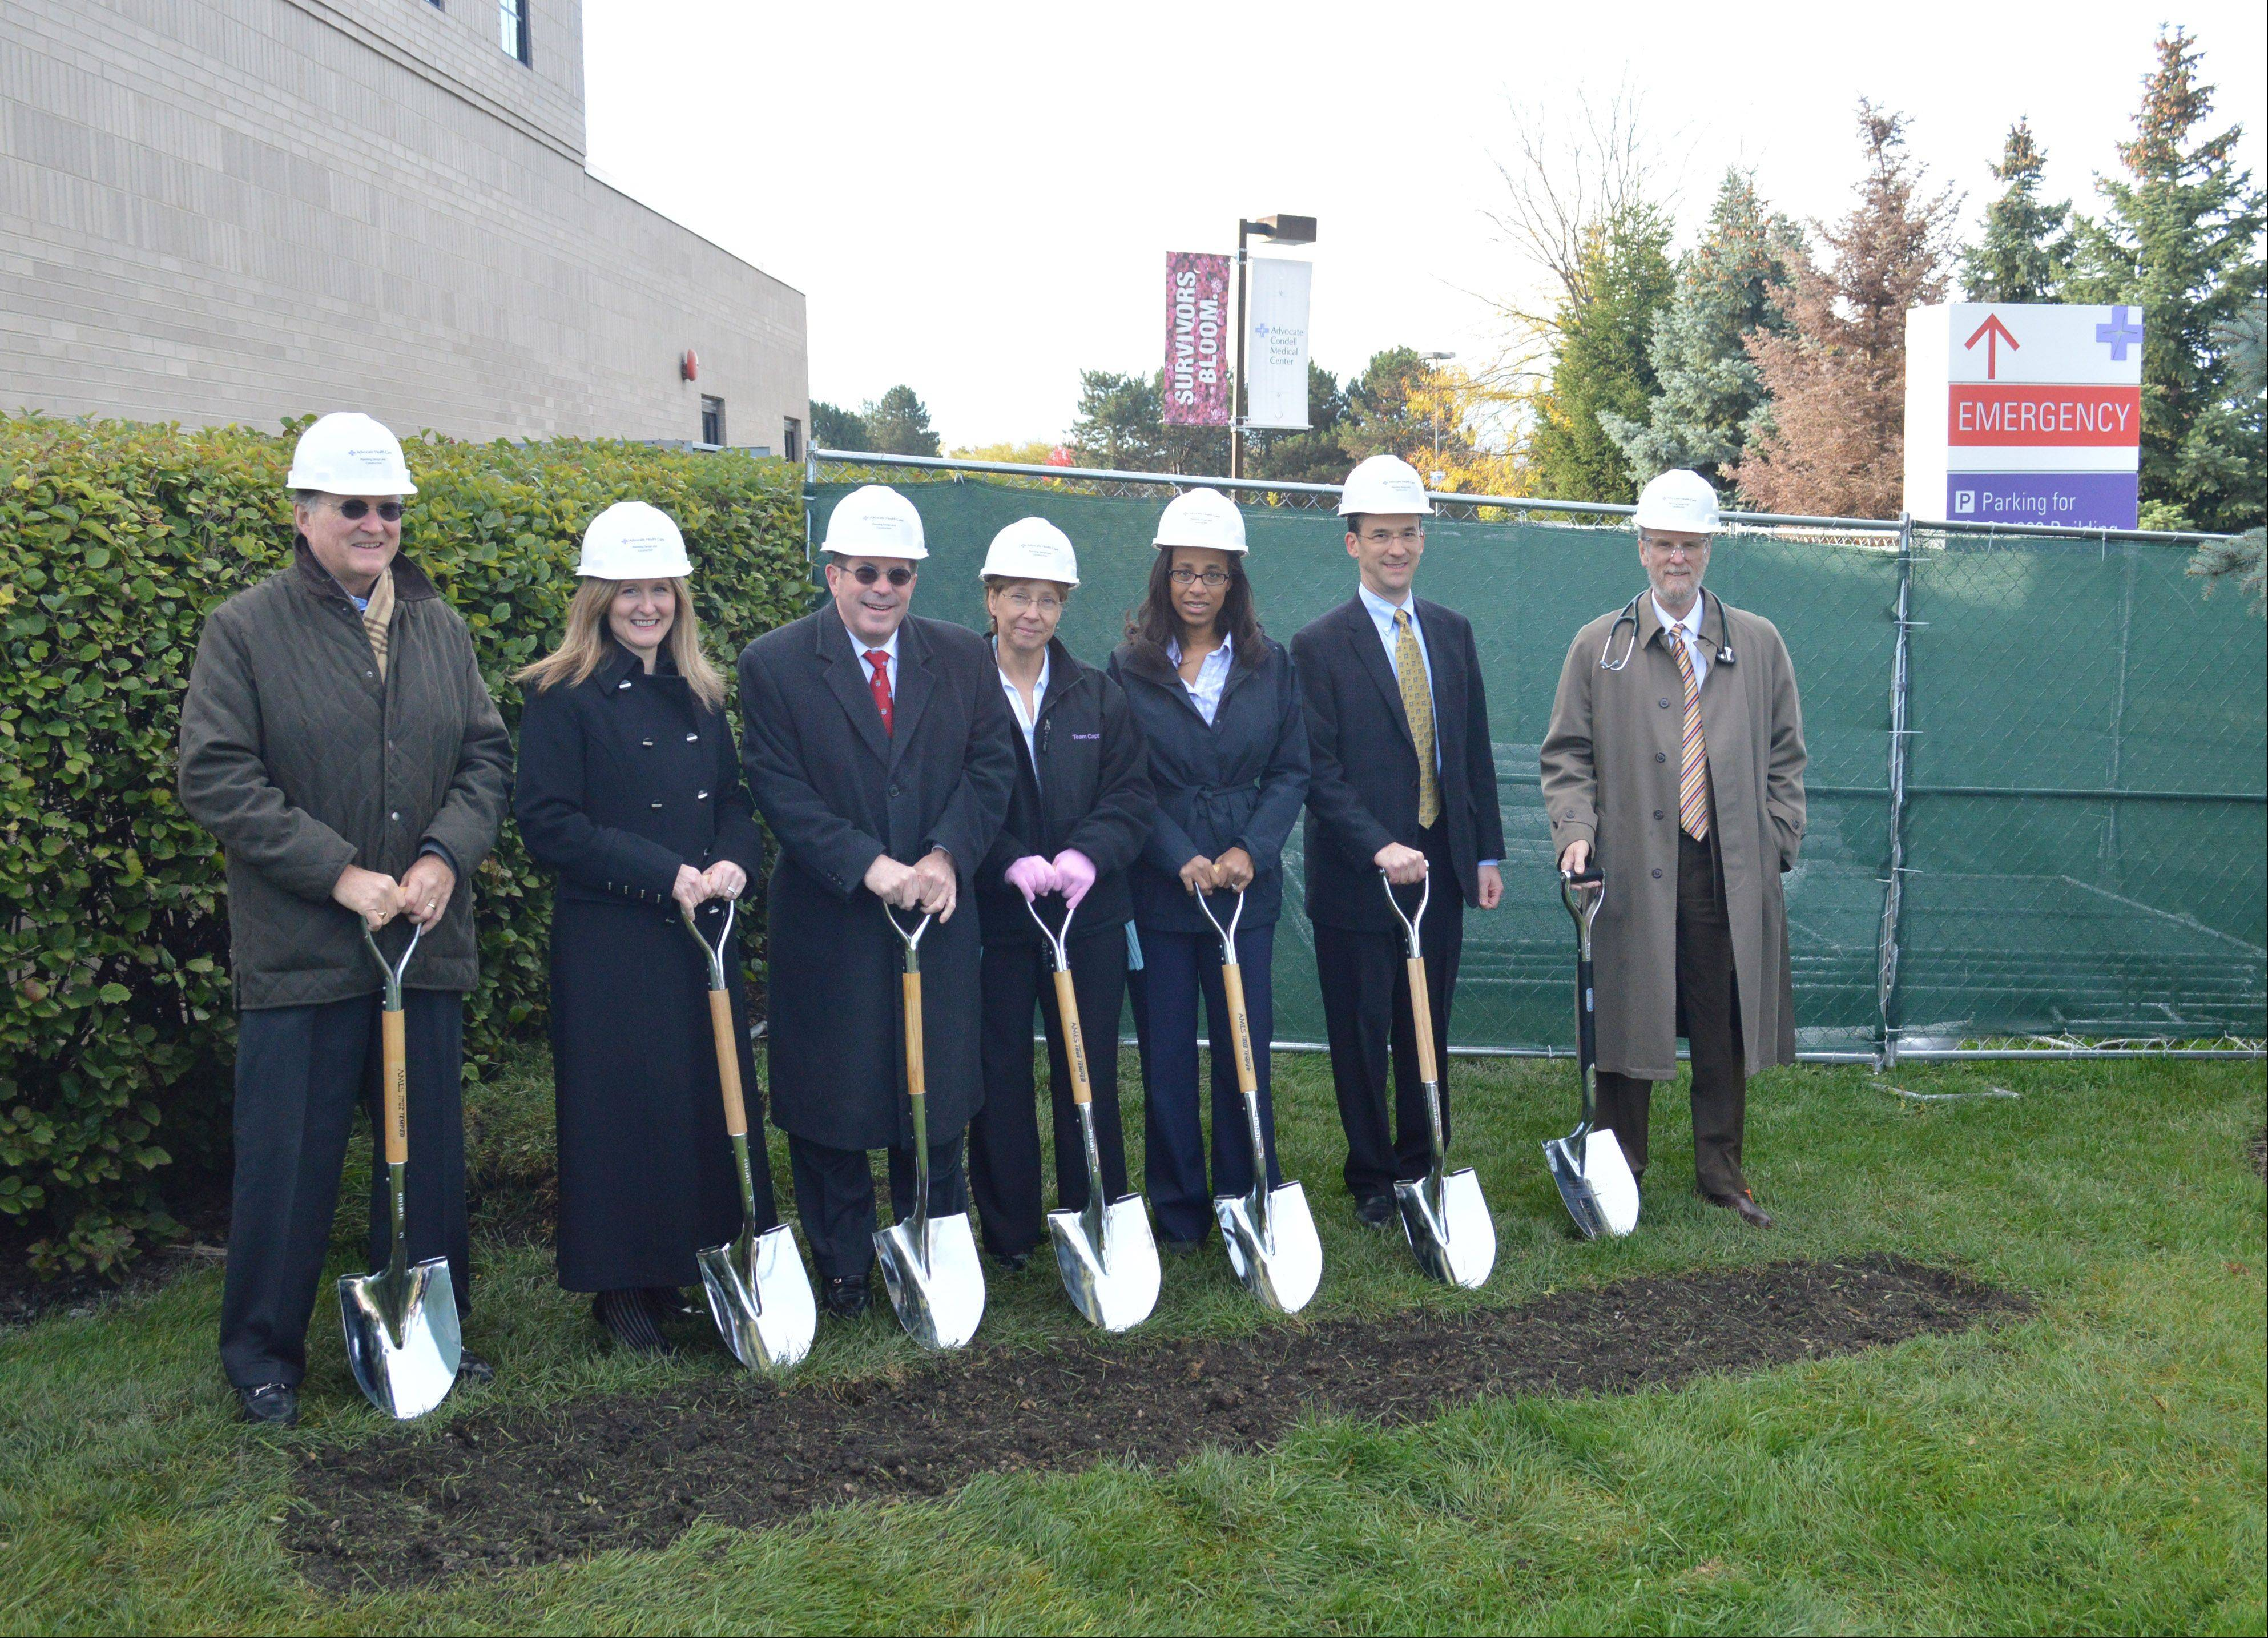 At the groundbreaking ceremony are, from left, Condell Governing Council Vice Chair David Johnson; President Advocate Condell Medical Center President Dominica Tallarico; Libertyville Mayor Terry Weppler; Condell Oncology Services Manager Wendy Tumminello; radiation oncologists Dr. Joy Coleman and Dr. James Ruffer; and Medical Director of Oncology Dr. Michael Cochran.